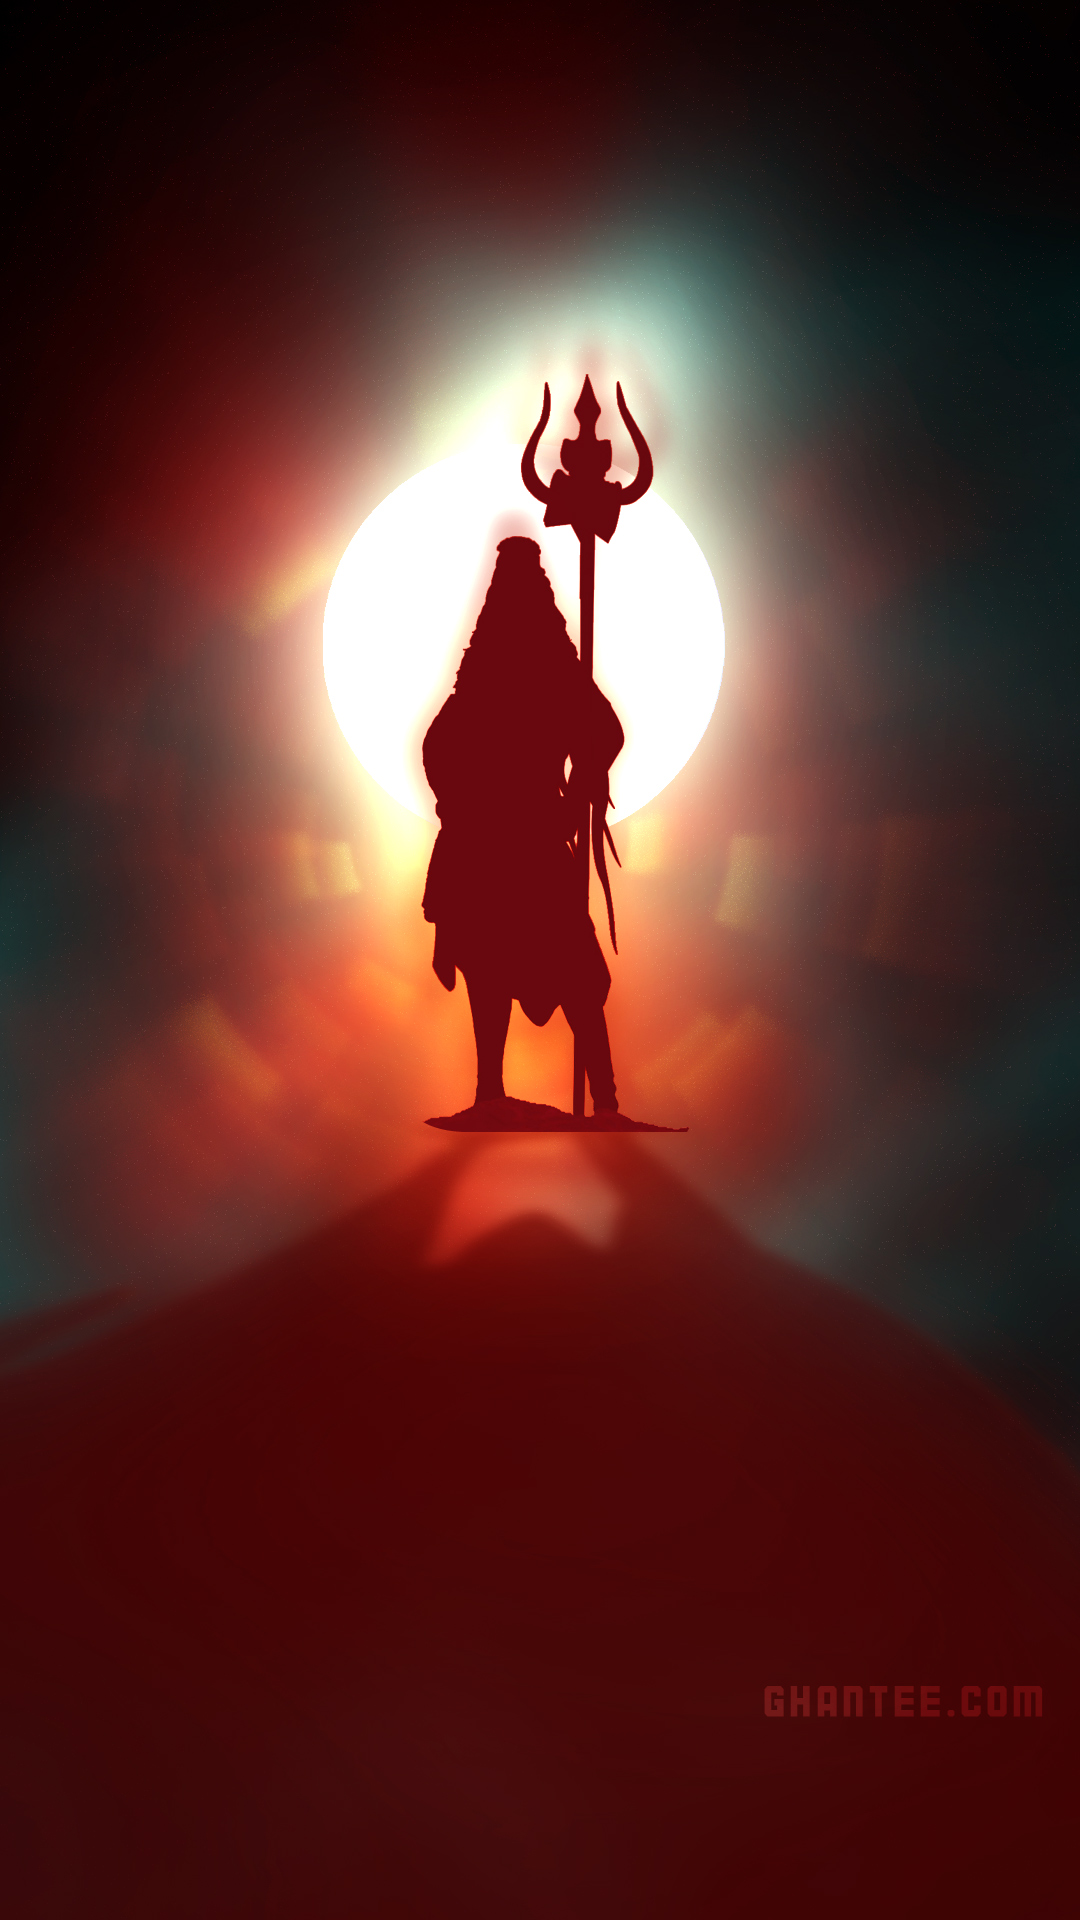 lord shiva glowing silhouette hd phone wallpaper